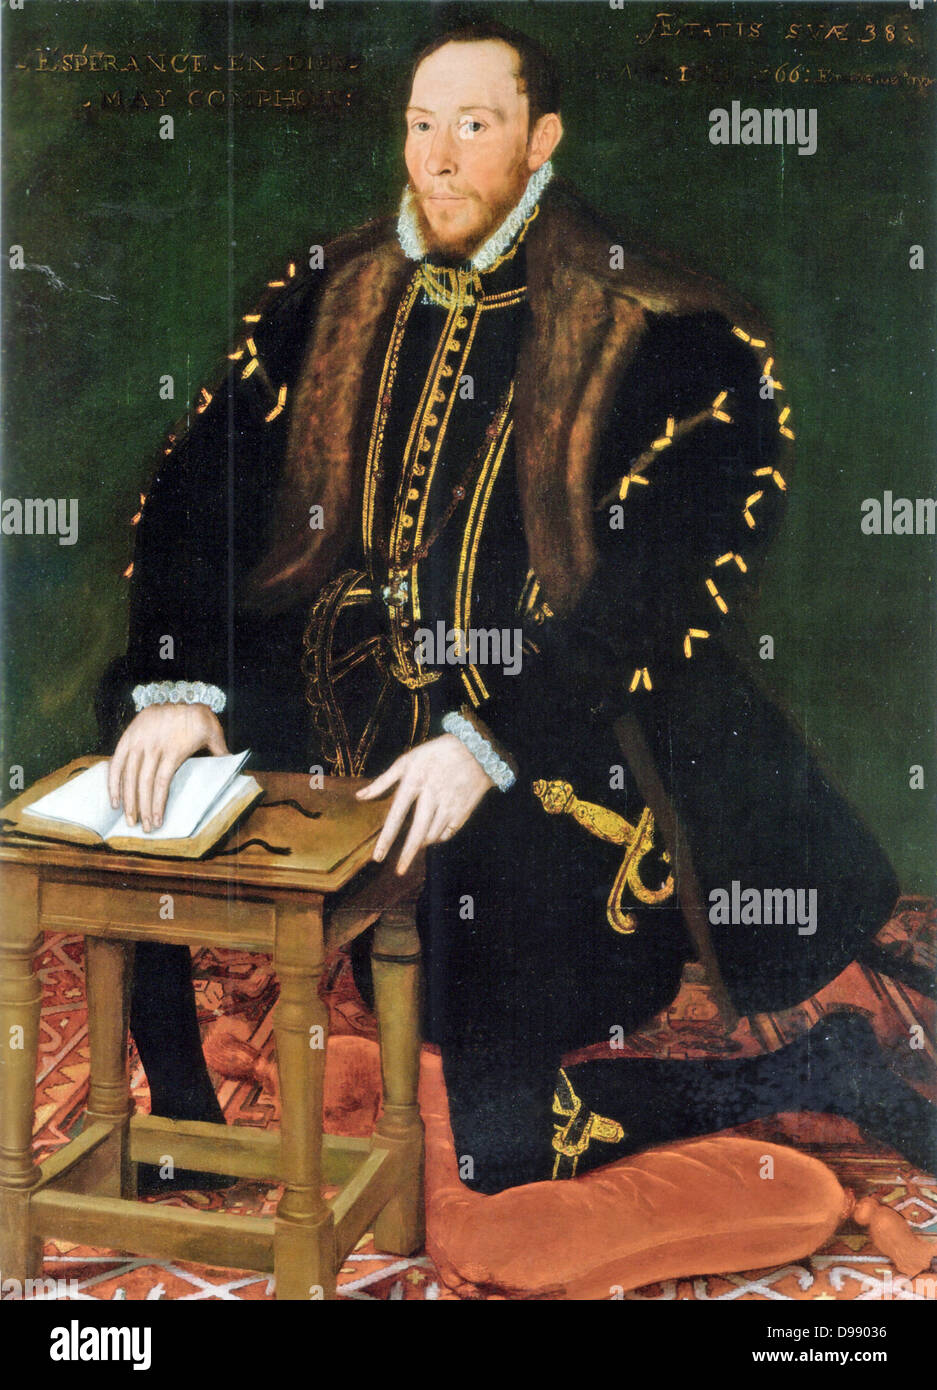 Thomas Percy, 7th Earl of Northumberland KG (1528 - 22 August 1572) led the Rising of the North and was executed - Stock Image